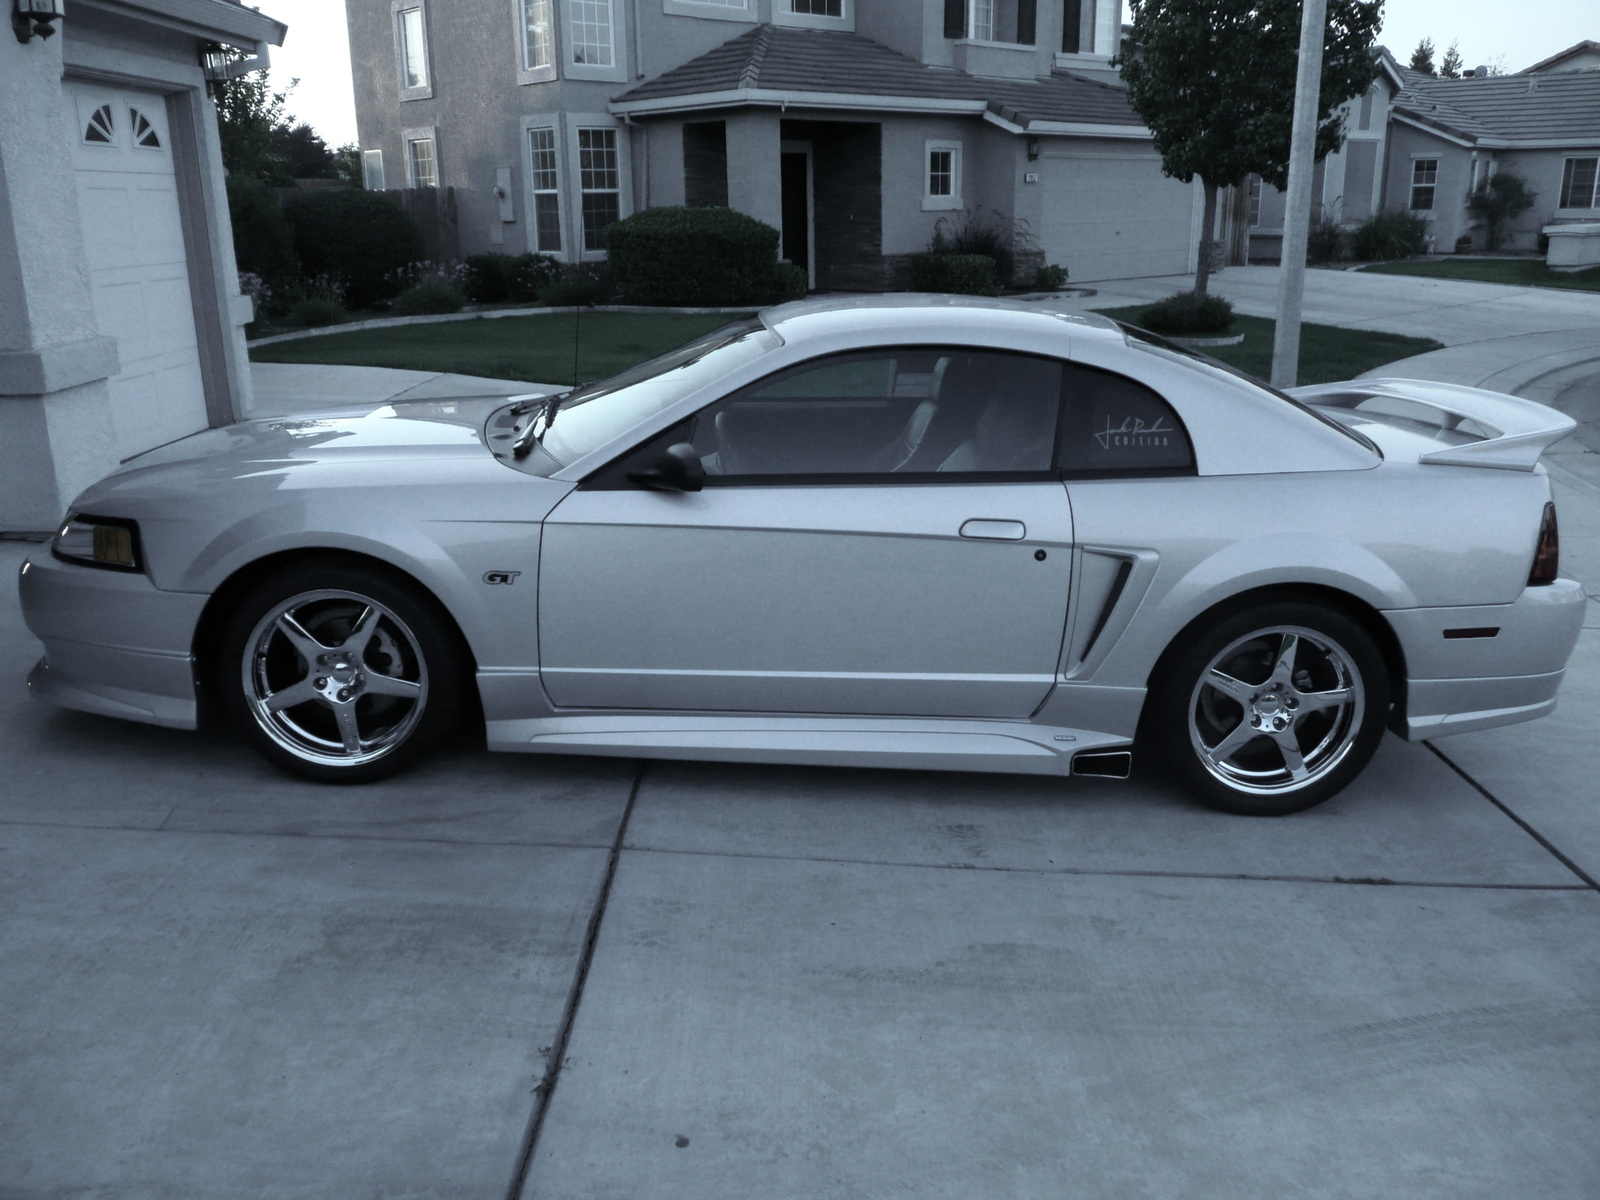 Ford Mustang 2000 Gt >> 2000 FORD MUSTANG - Image #15